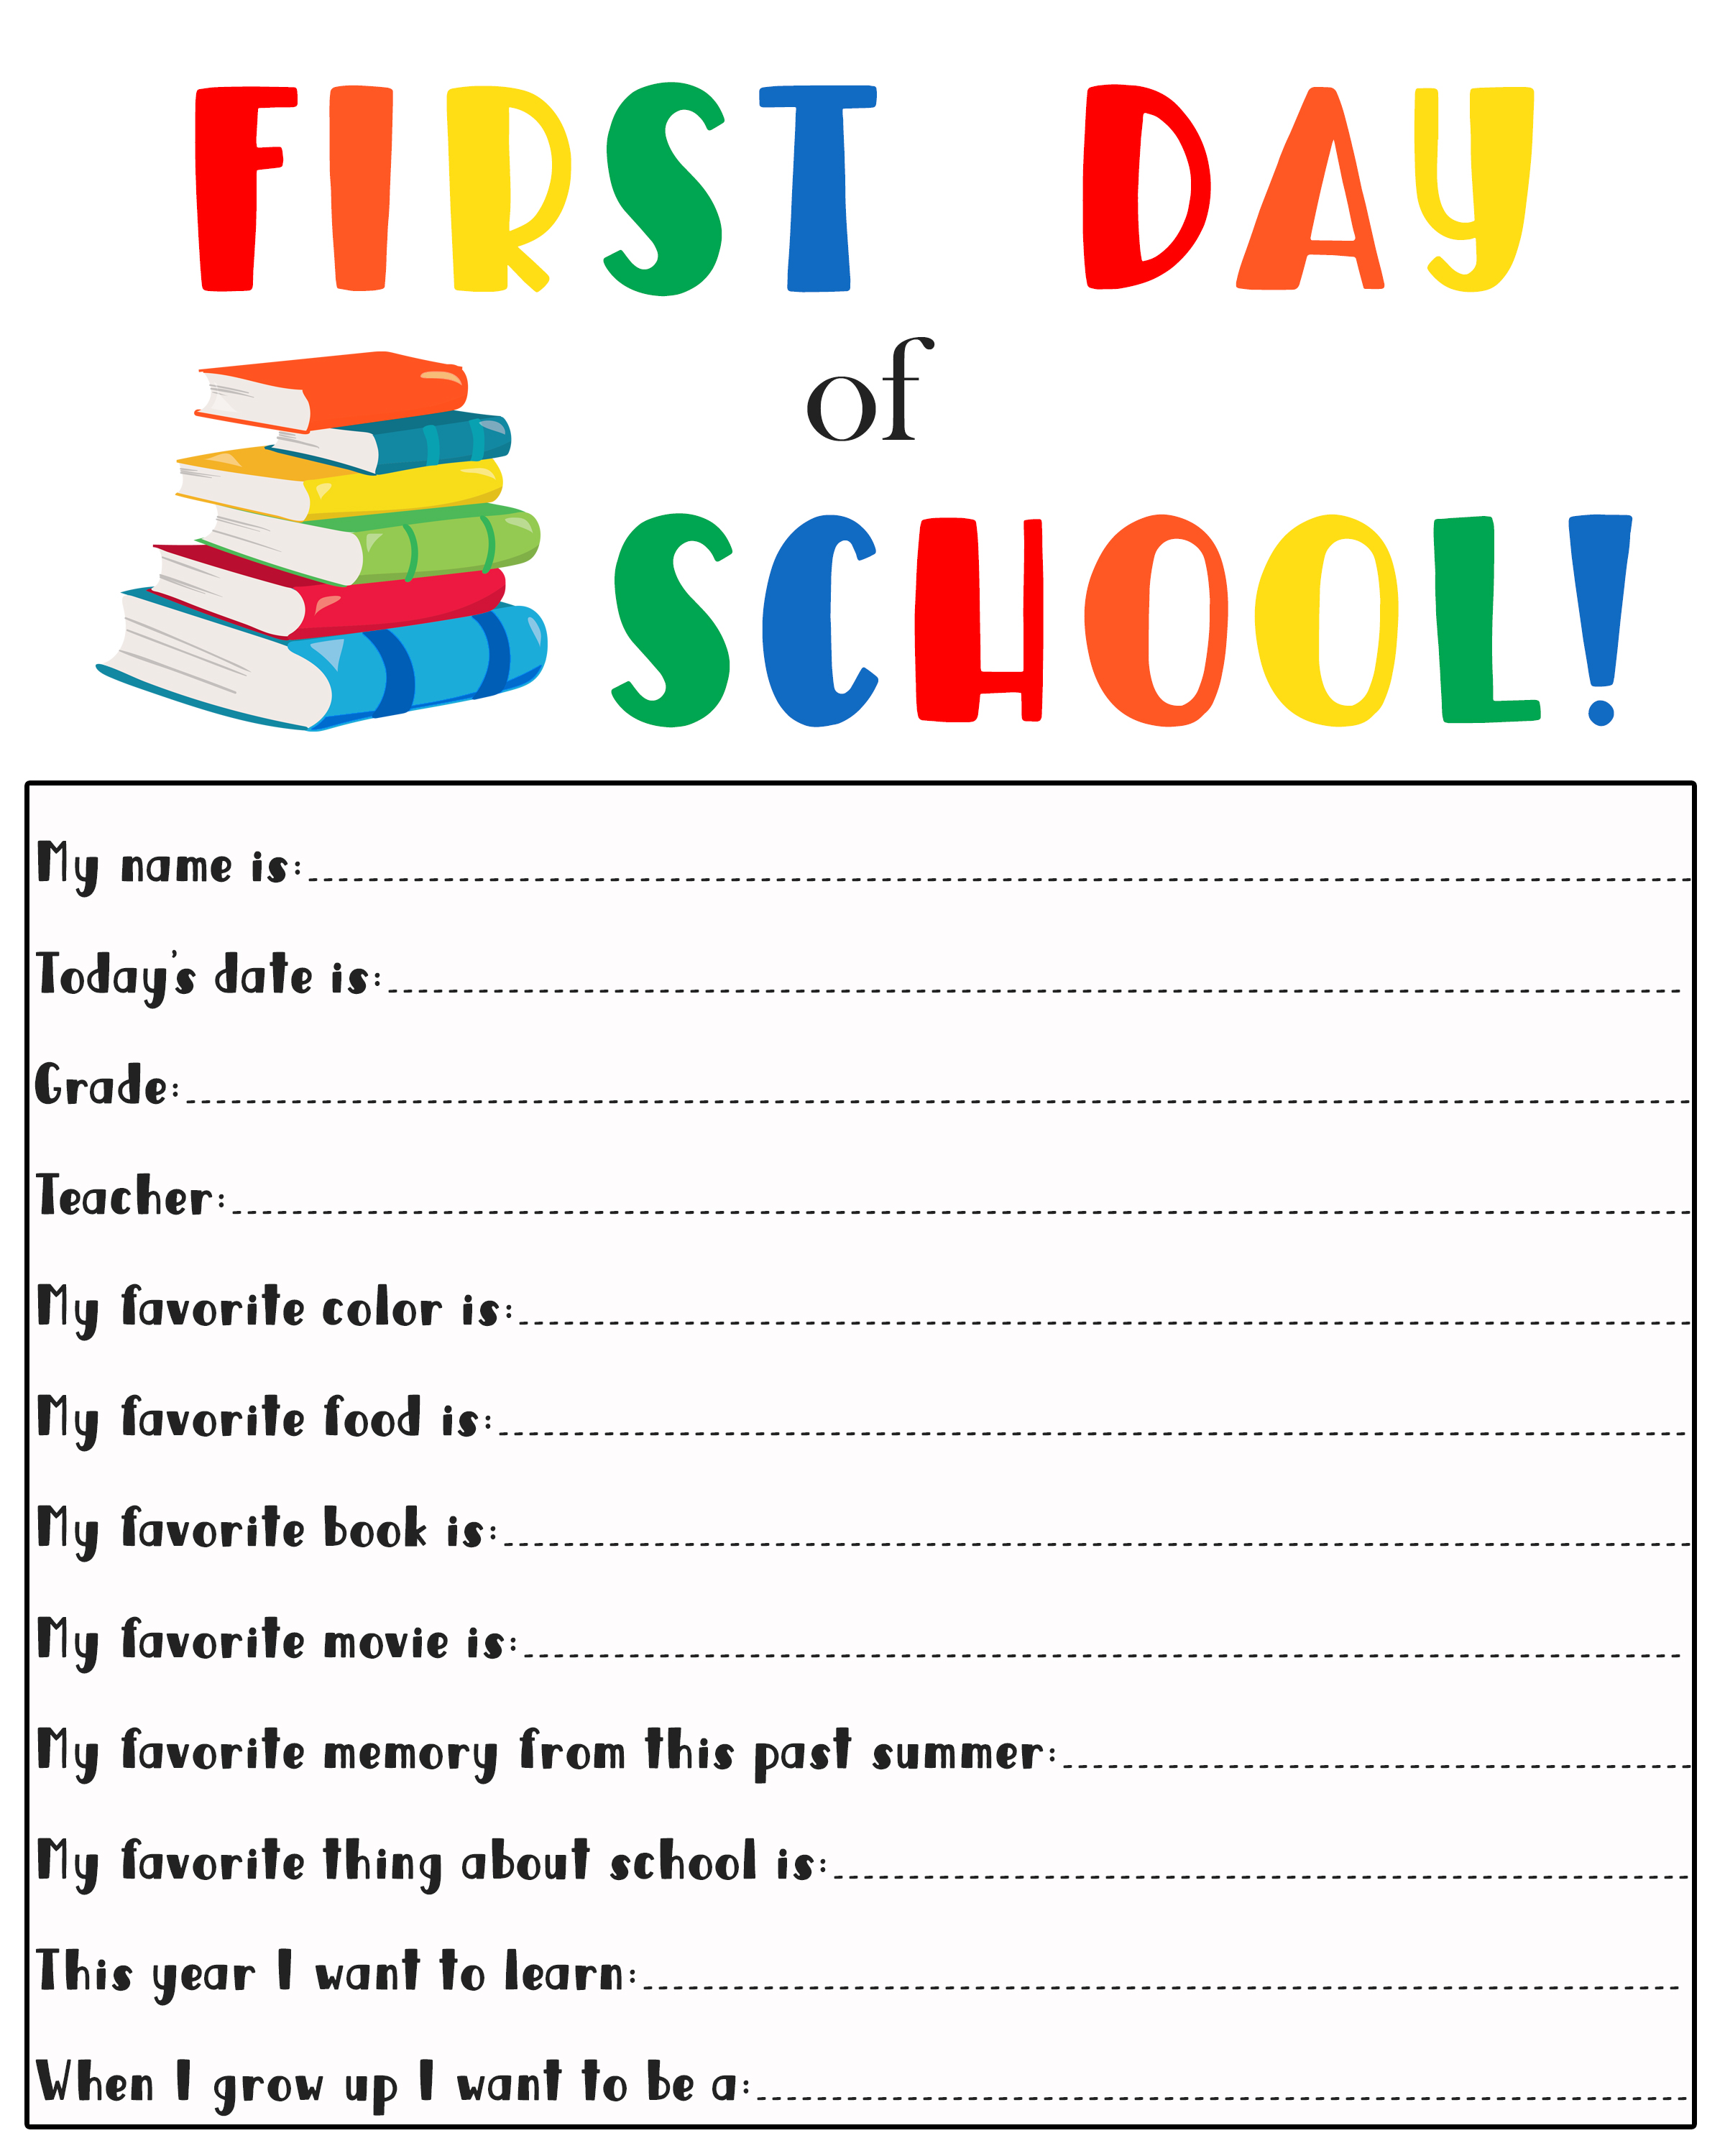 1st Day Of School Printable